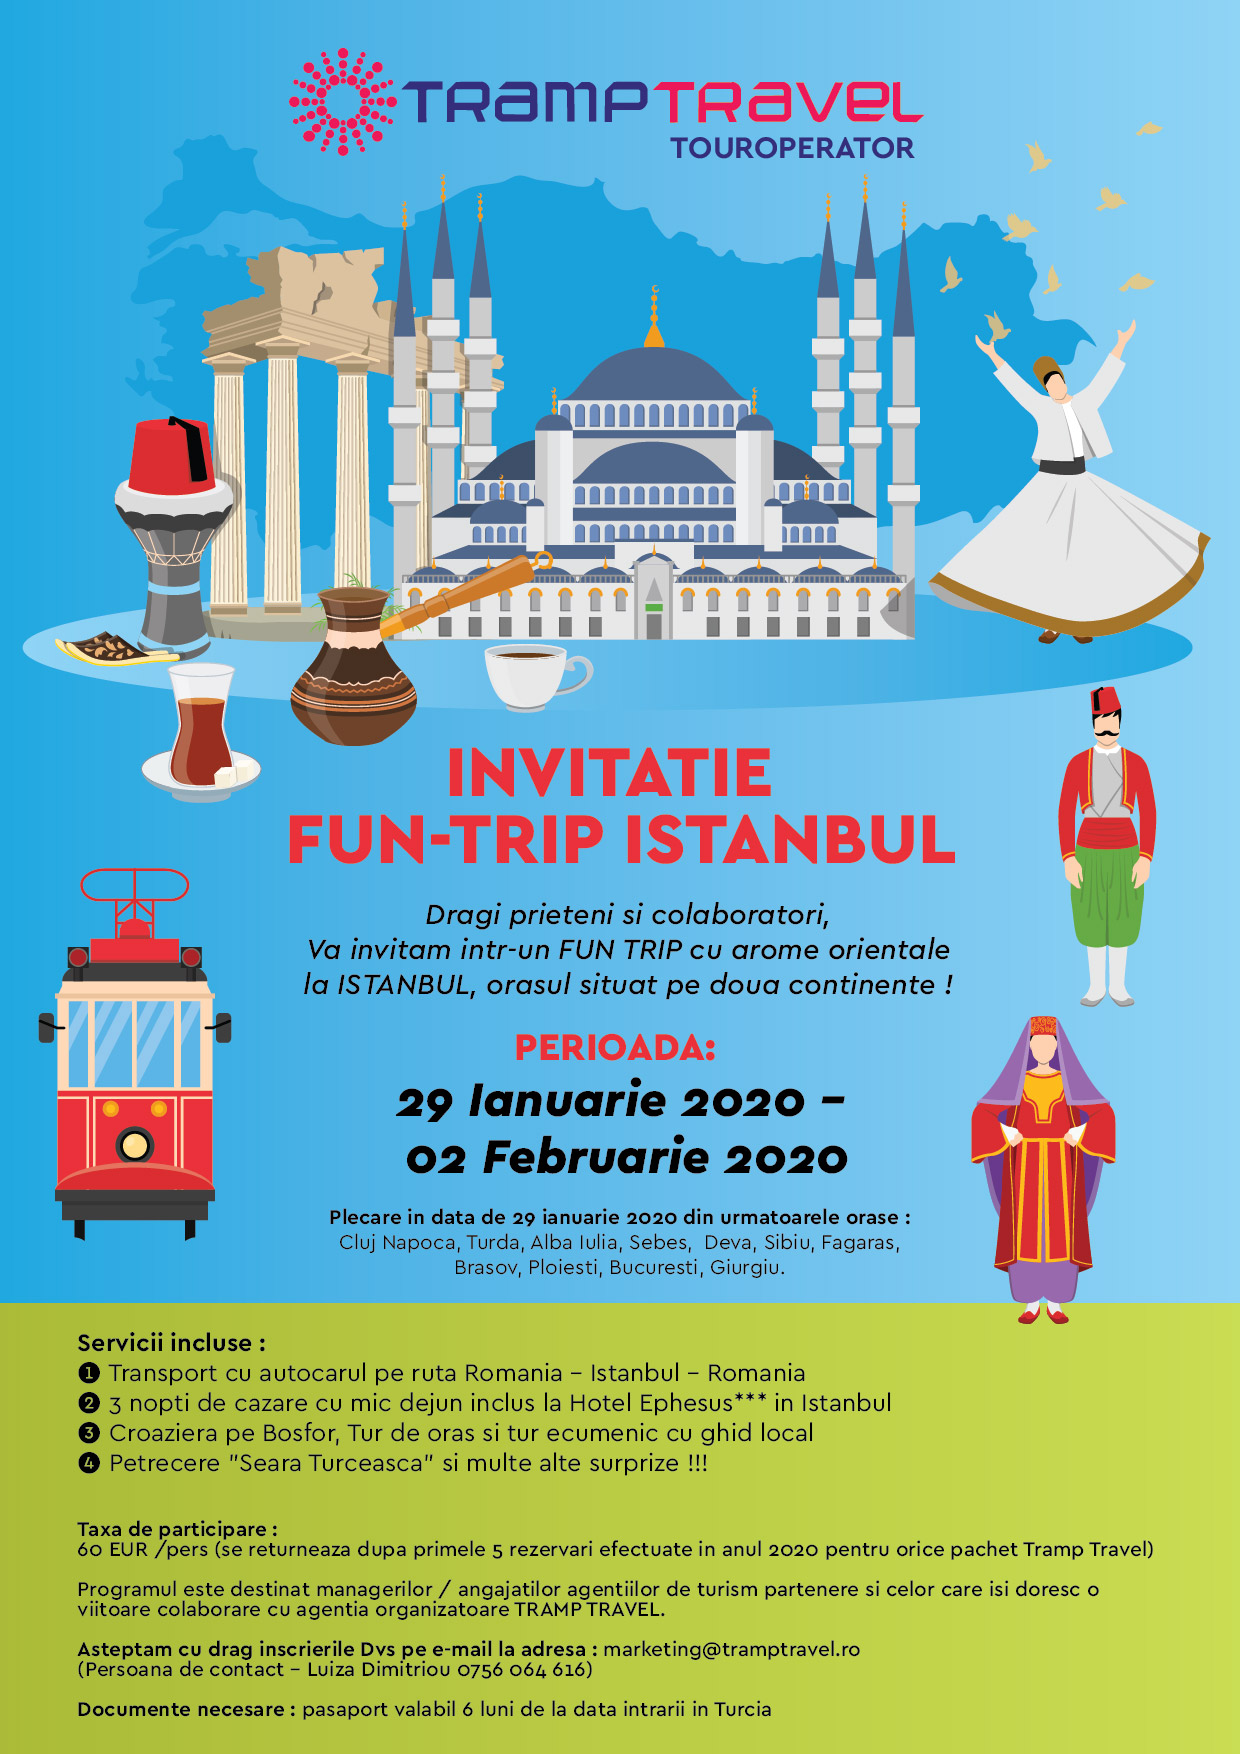 FUN TRIP Istanbul 29 ianuarie - 02 februarie 2020 by Tramp Travel